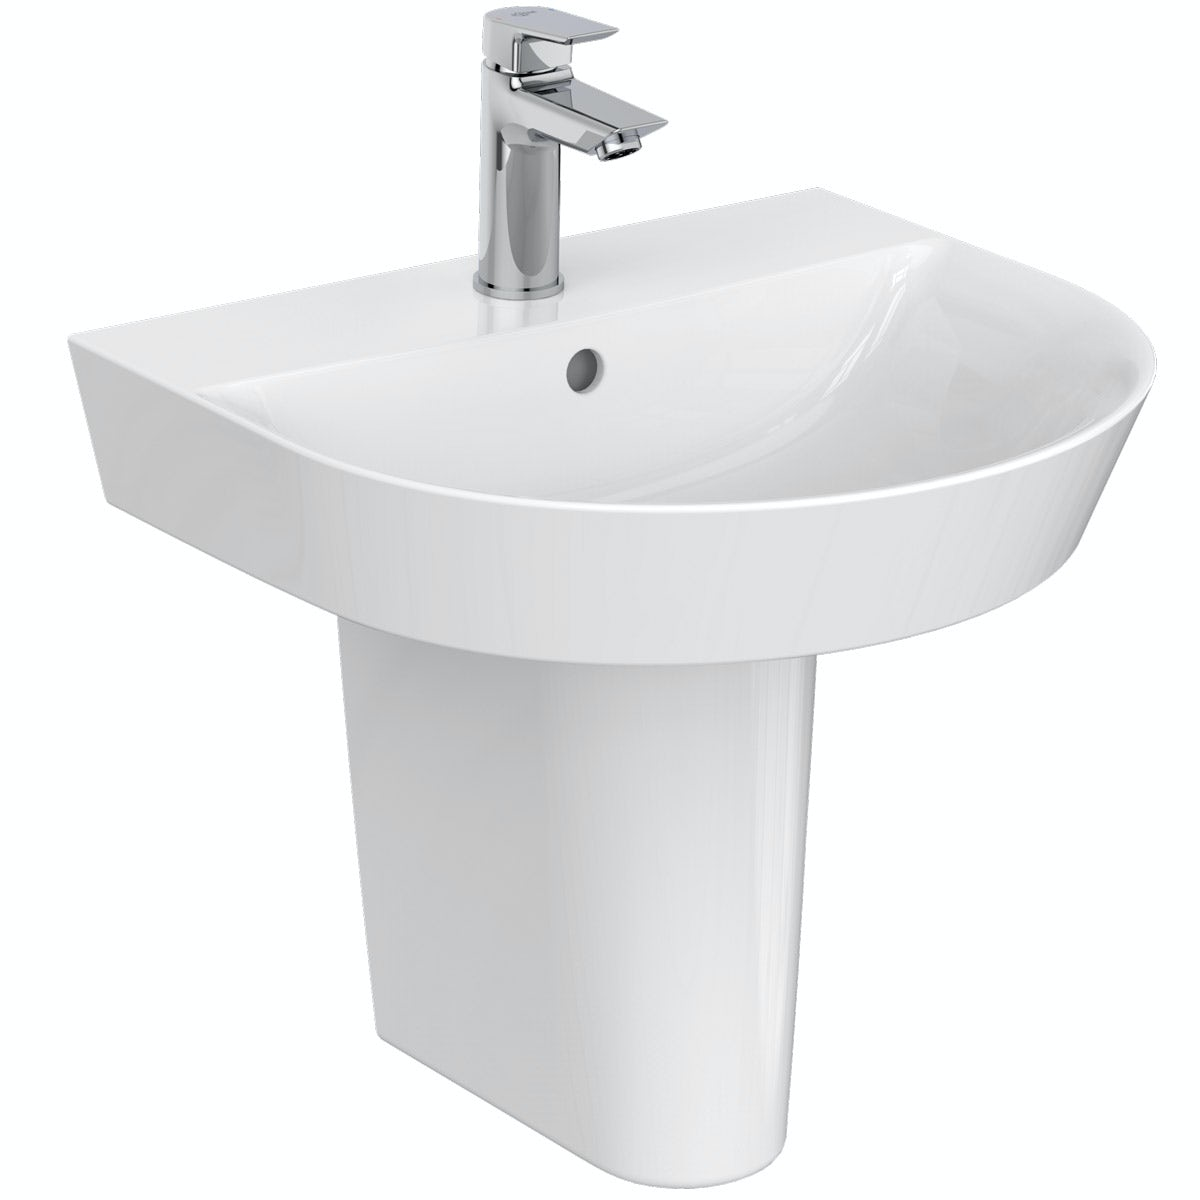 Ideal Standard Concept Air Arc 1 tap hole semi pedestal basin 500mm